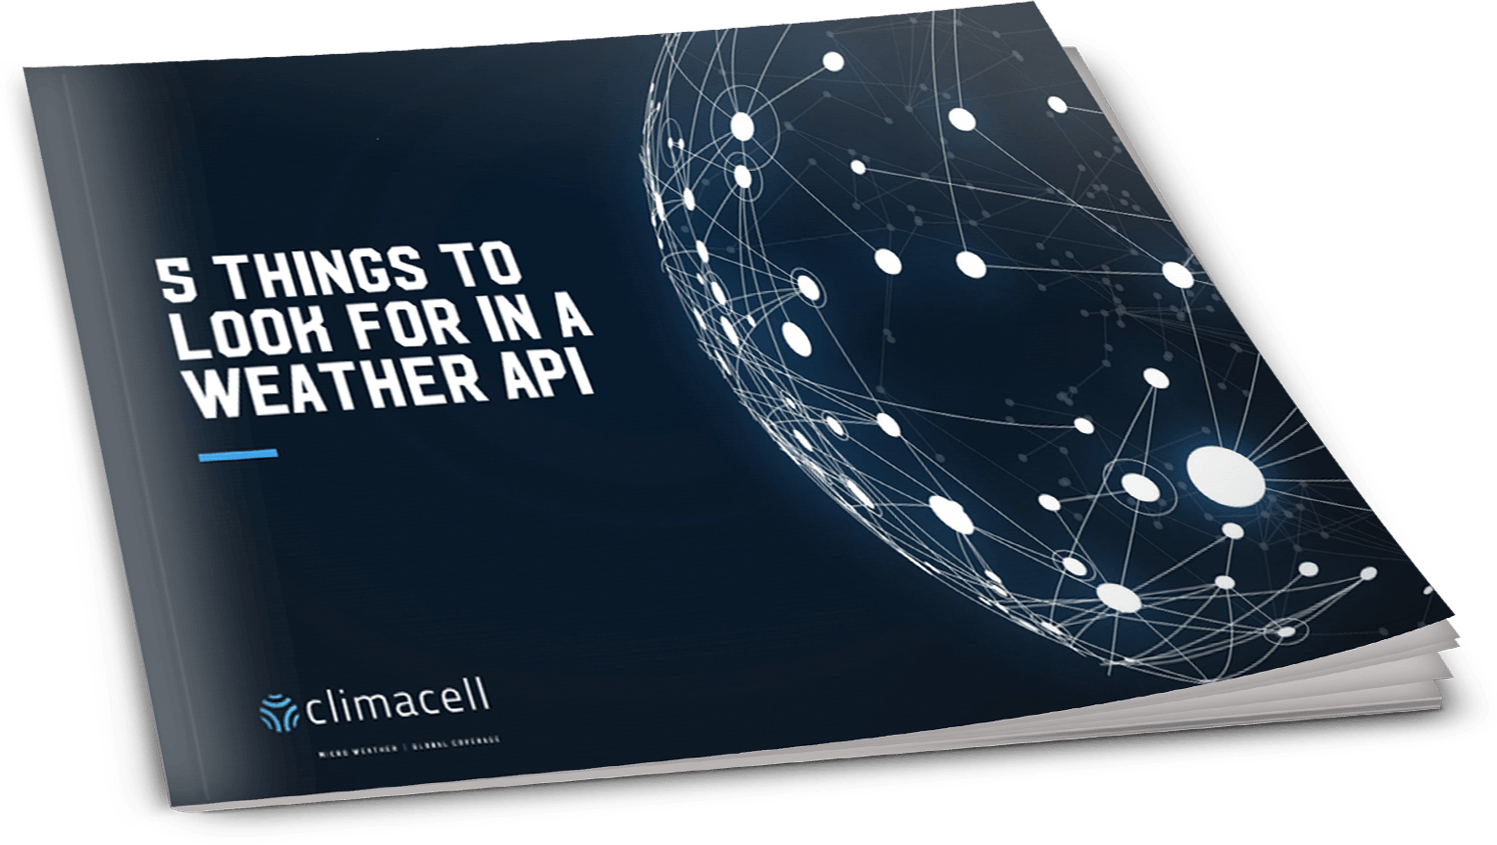 5 Things to Look for in a Weather API guide